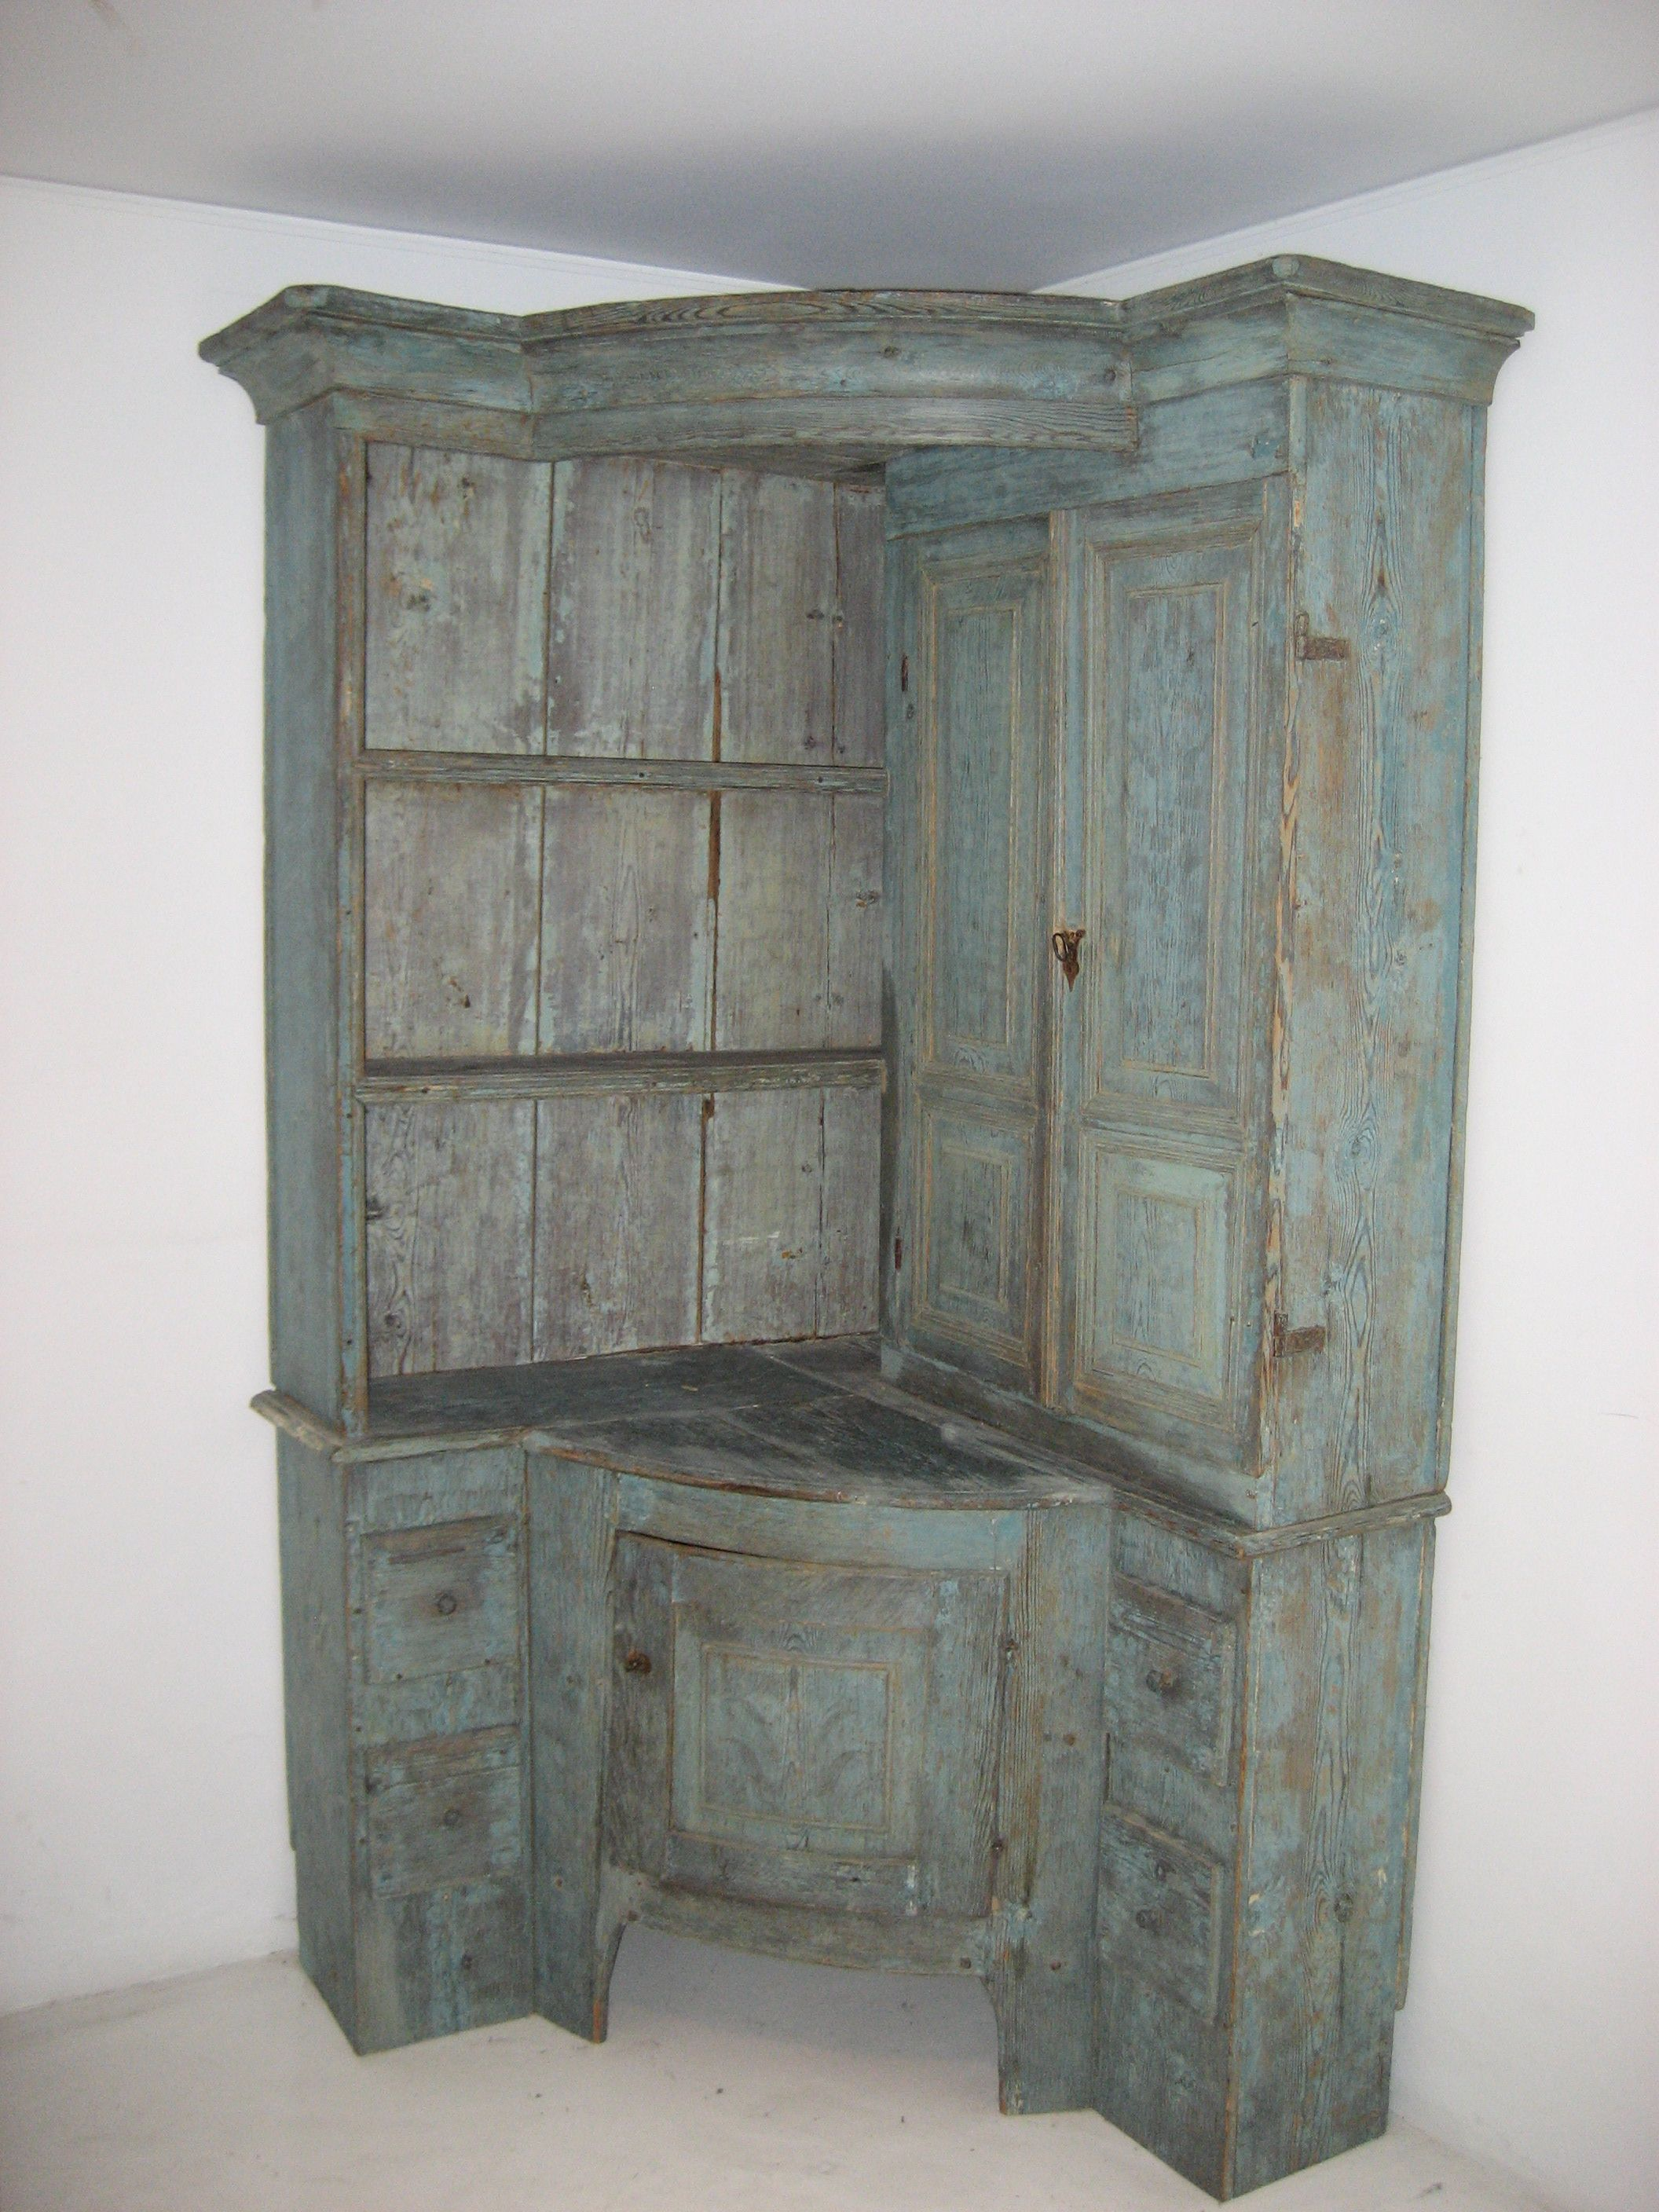 absolutely unique piece of furniture--antique Swedish corner cabinet on ideas for kitchen table, ideas for kitchen pantry, ideas for kitchen shelves, ideas for kitchen painting, ideas for kitchen hutch, ideas for kitchen bar, ideas for kitchen wine rack, ideas for kitchen desk,